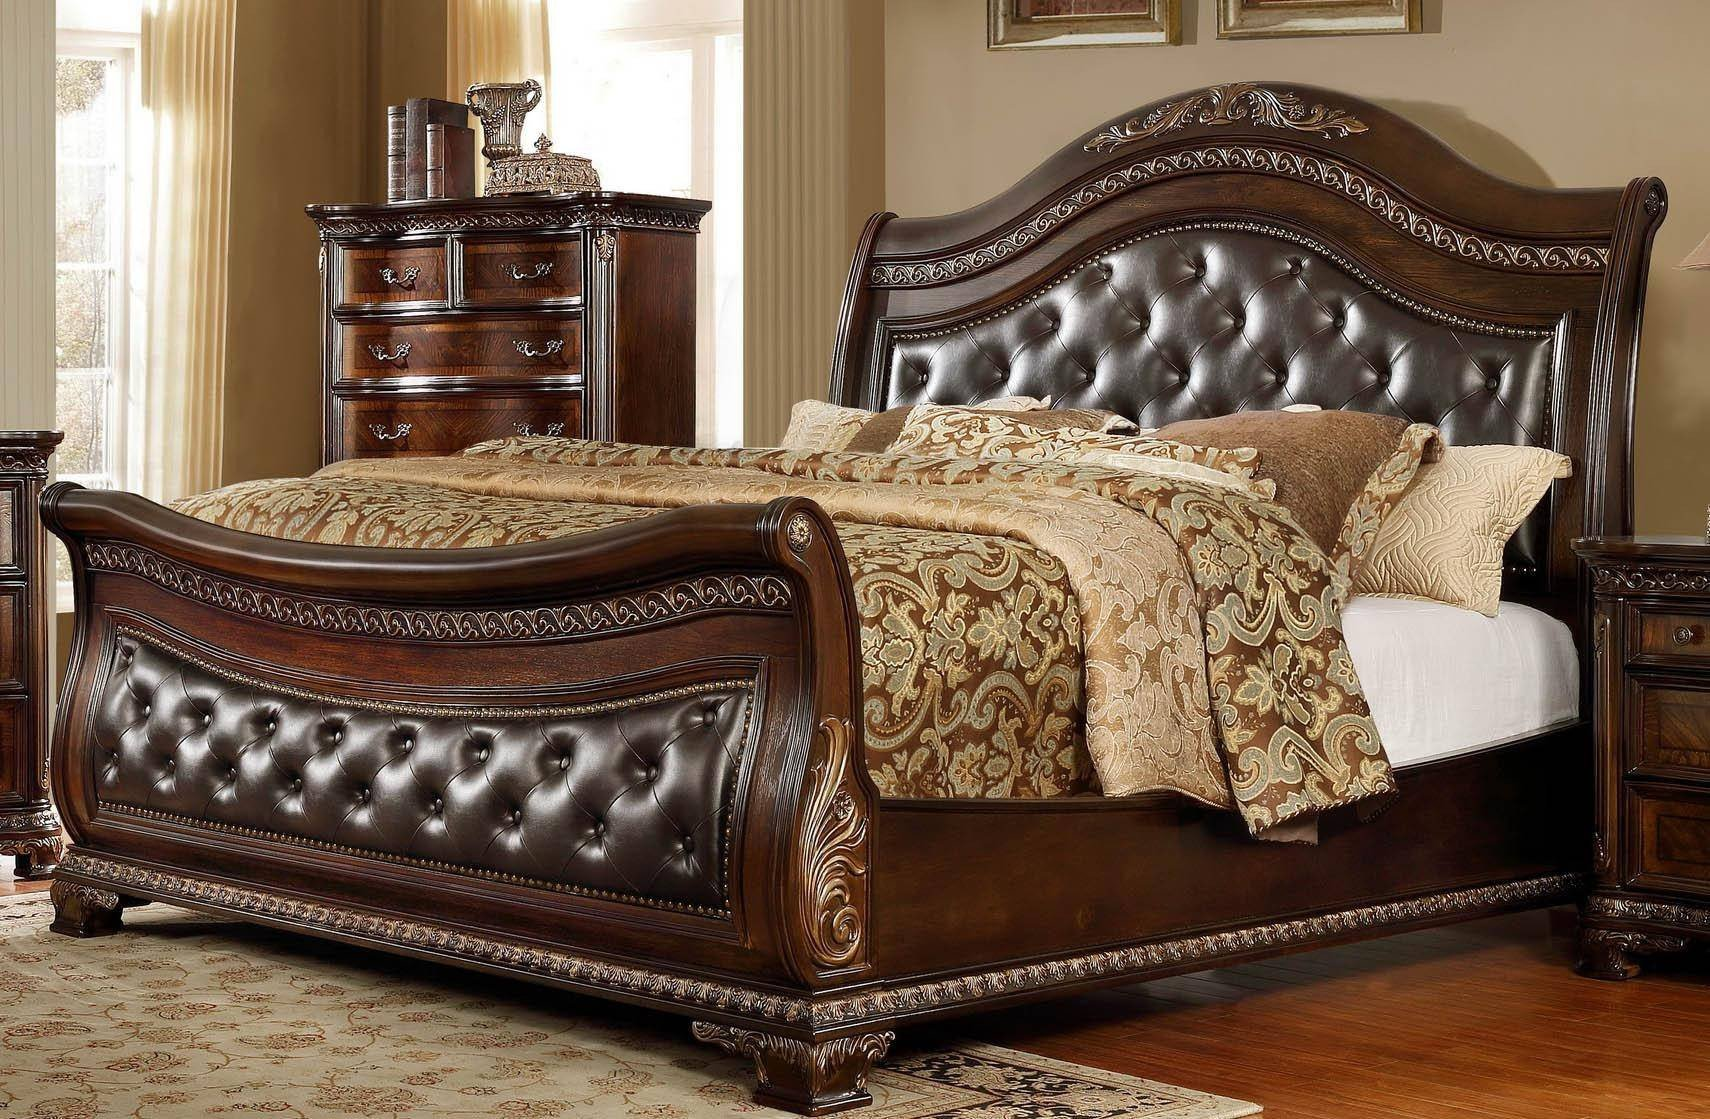 King Size Bedroom Set with Mattress Beautiful Mcferran B9588 King Sleigh Bed In Oak Veneers Dark Cherry Finish Leather